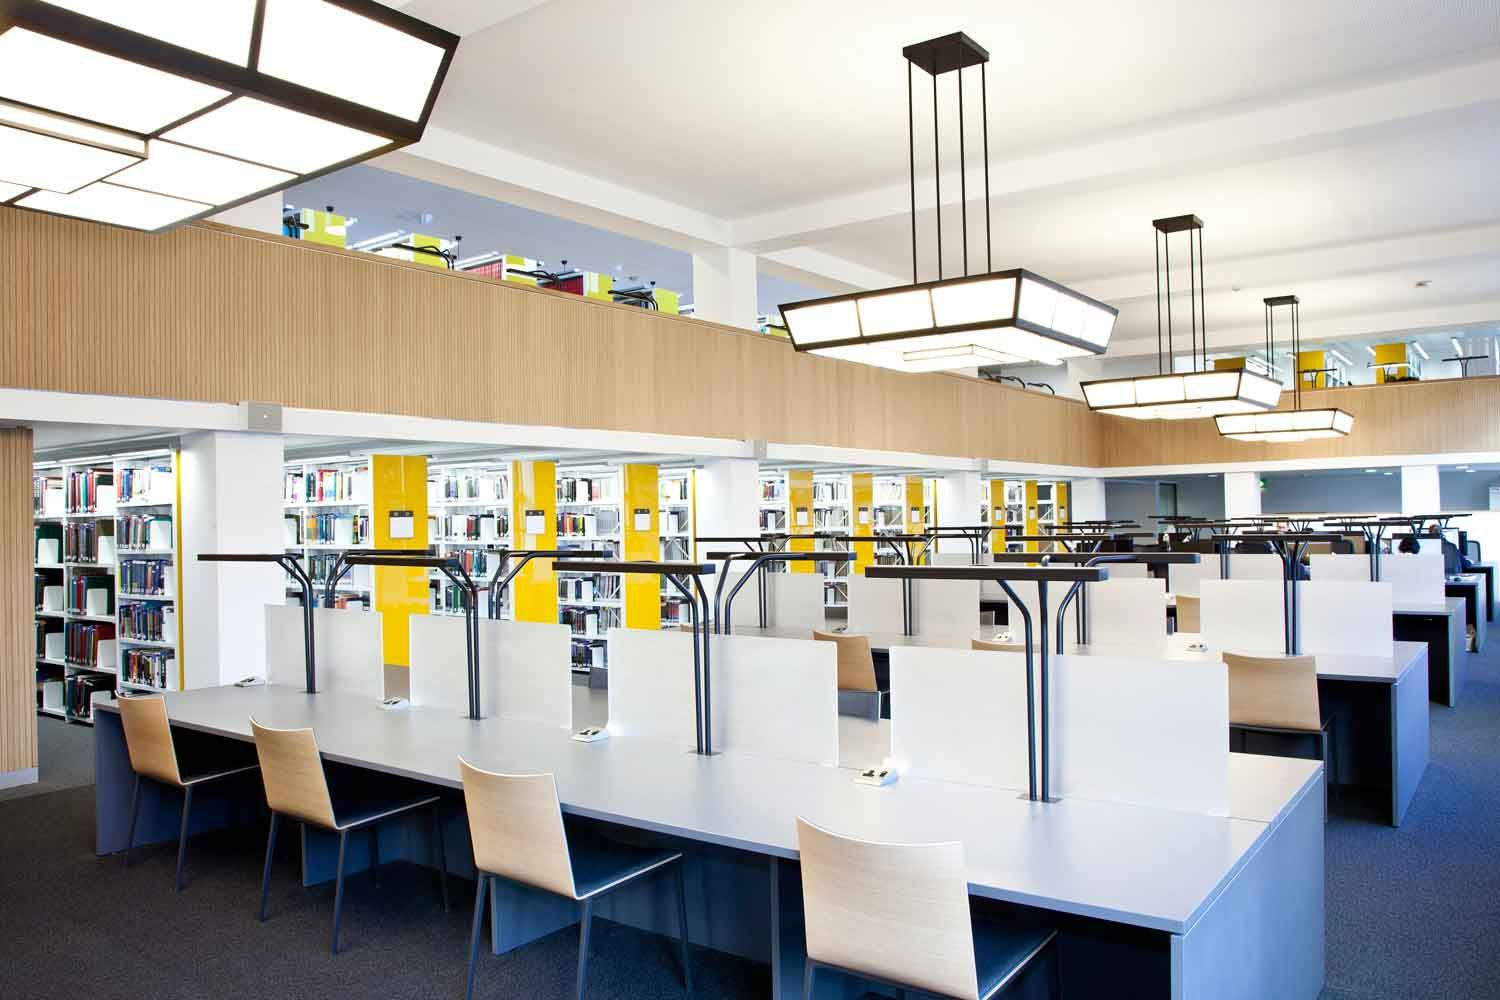 University Of Hull · Library FurnitureUniversity